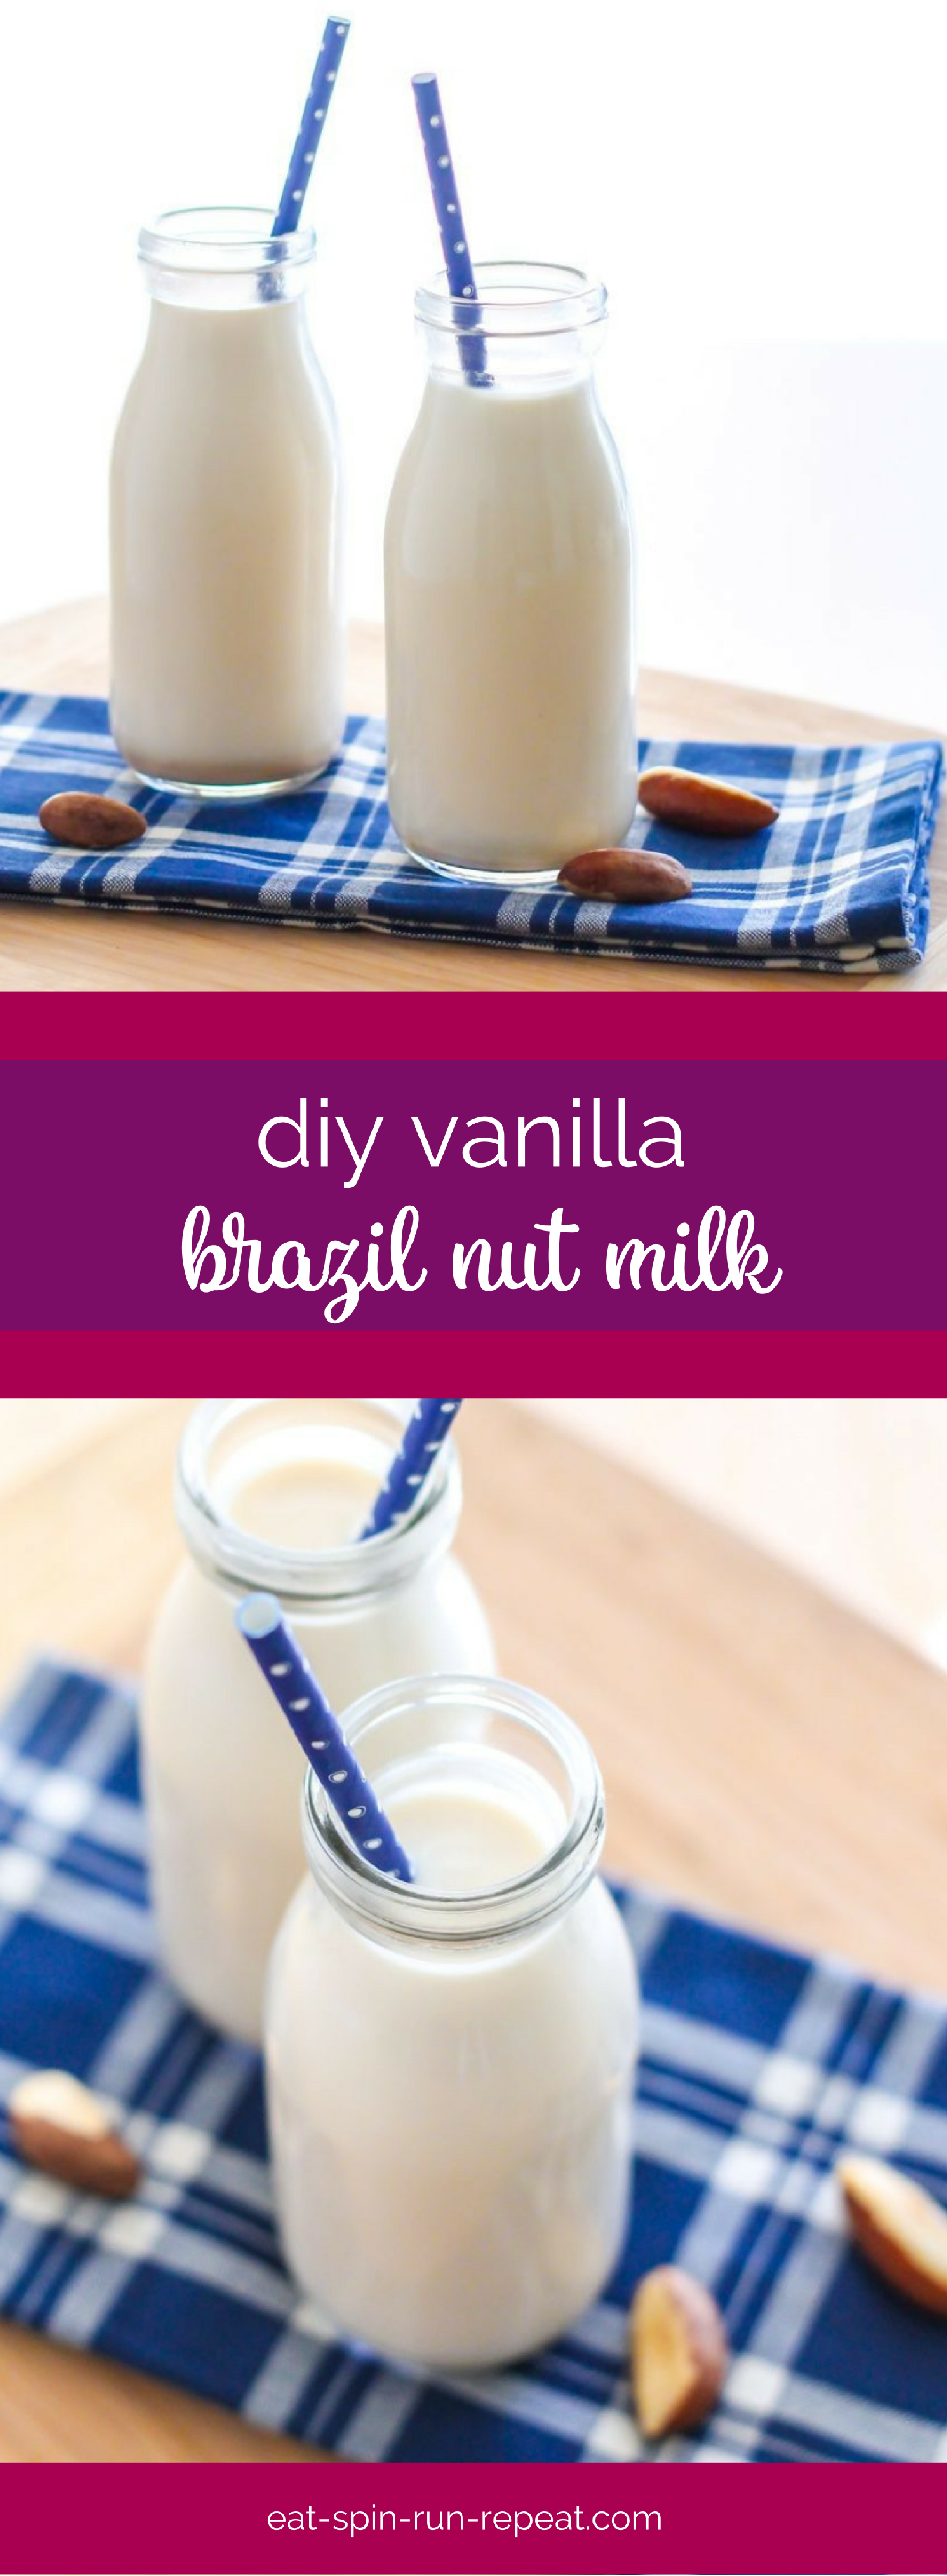 This DIY vanilla Brazil nut milk will take your next pumpkin spice latte to a whole new level! Vegan, dairy-free, gluten-free and naturally sweetened with dates.